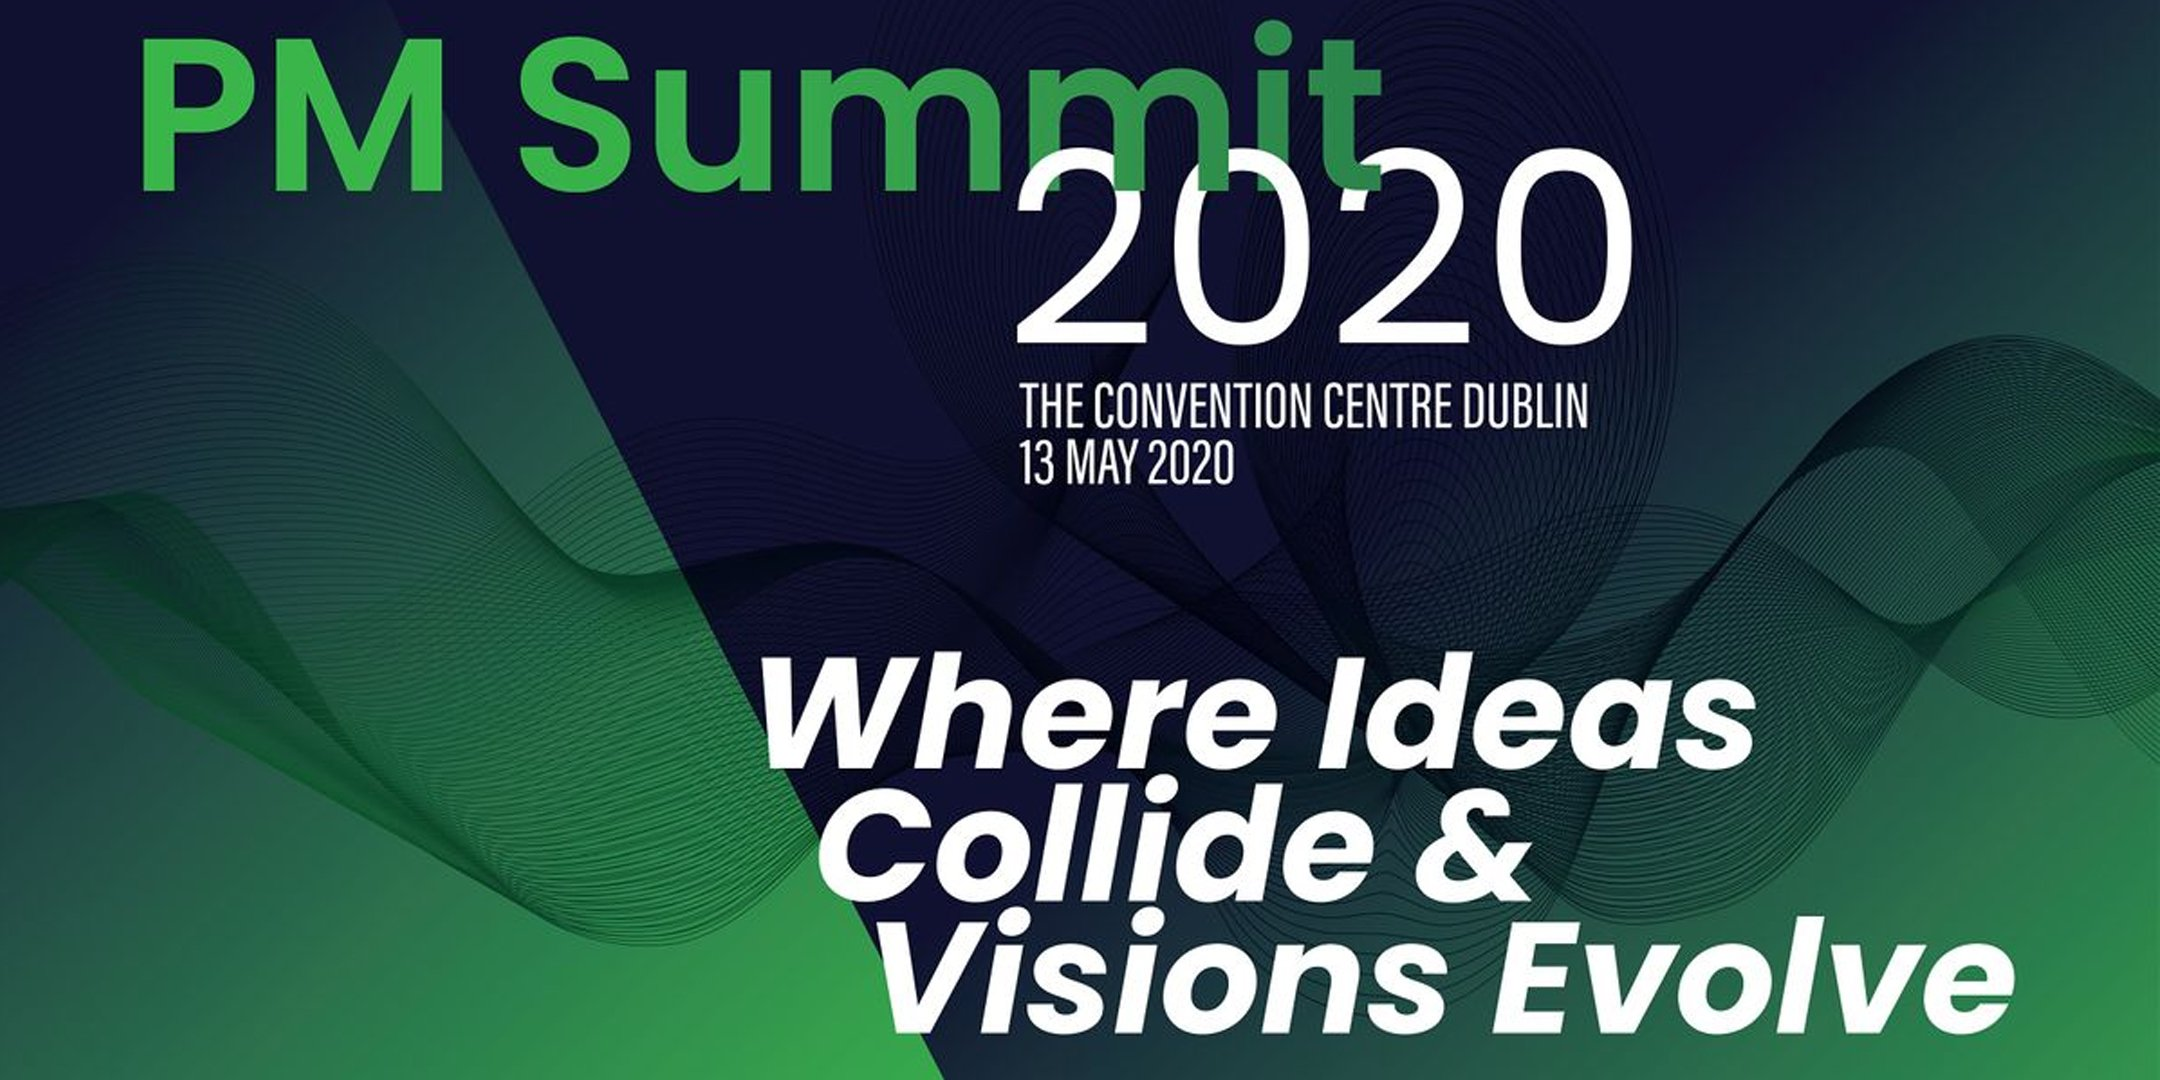 PM Summit 2020 | Wellingtone